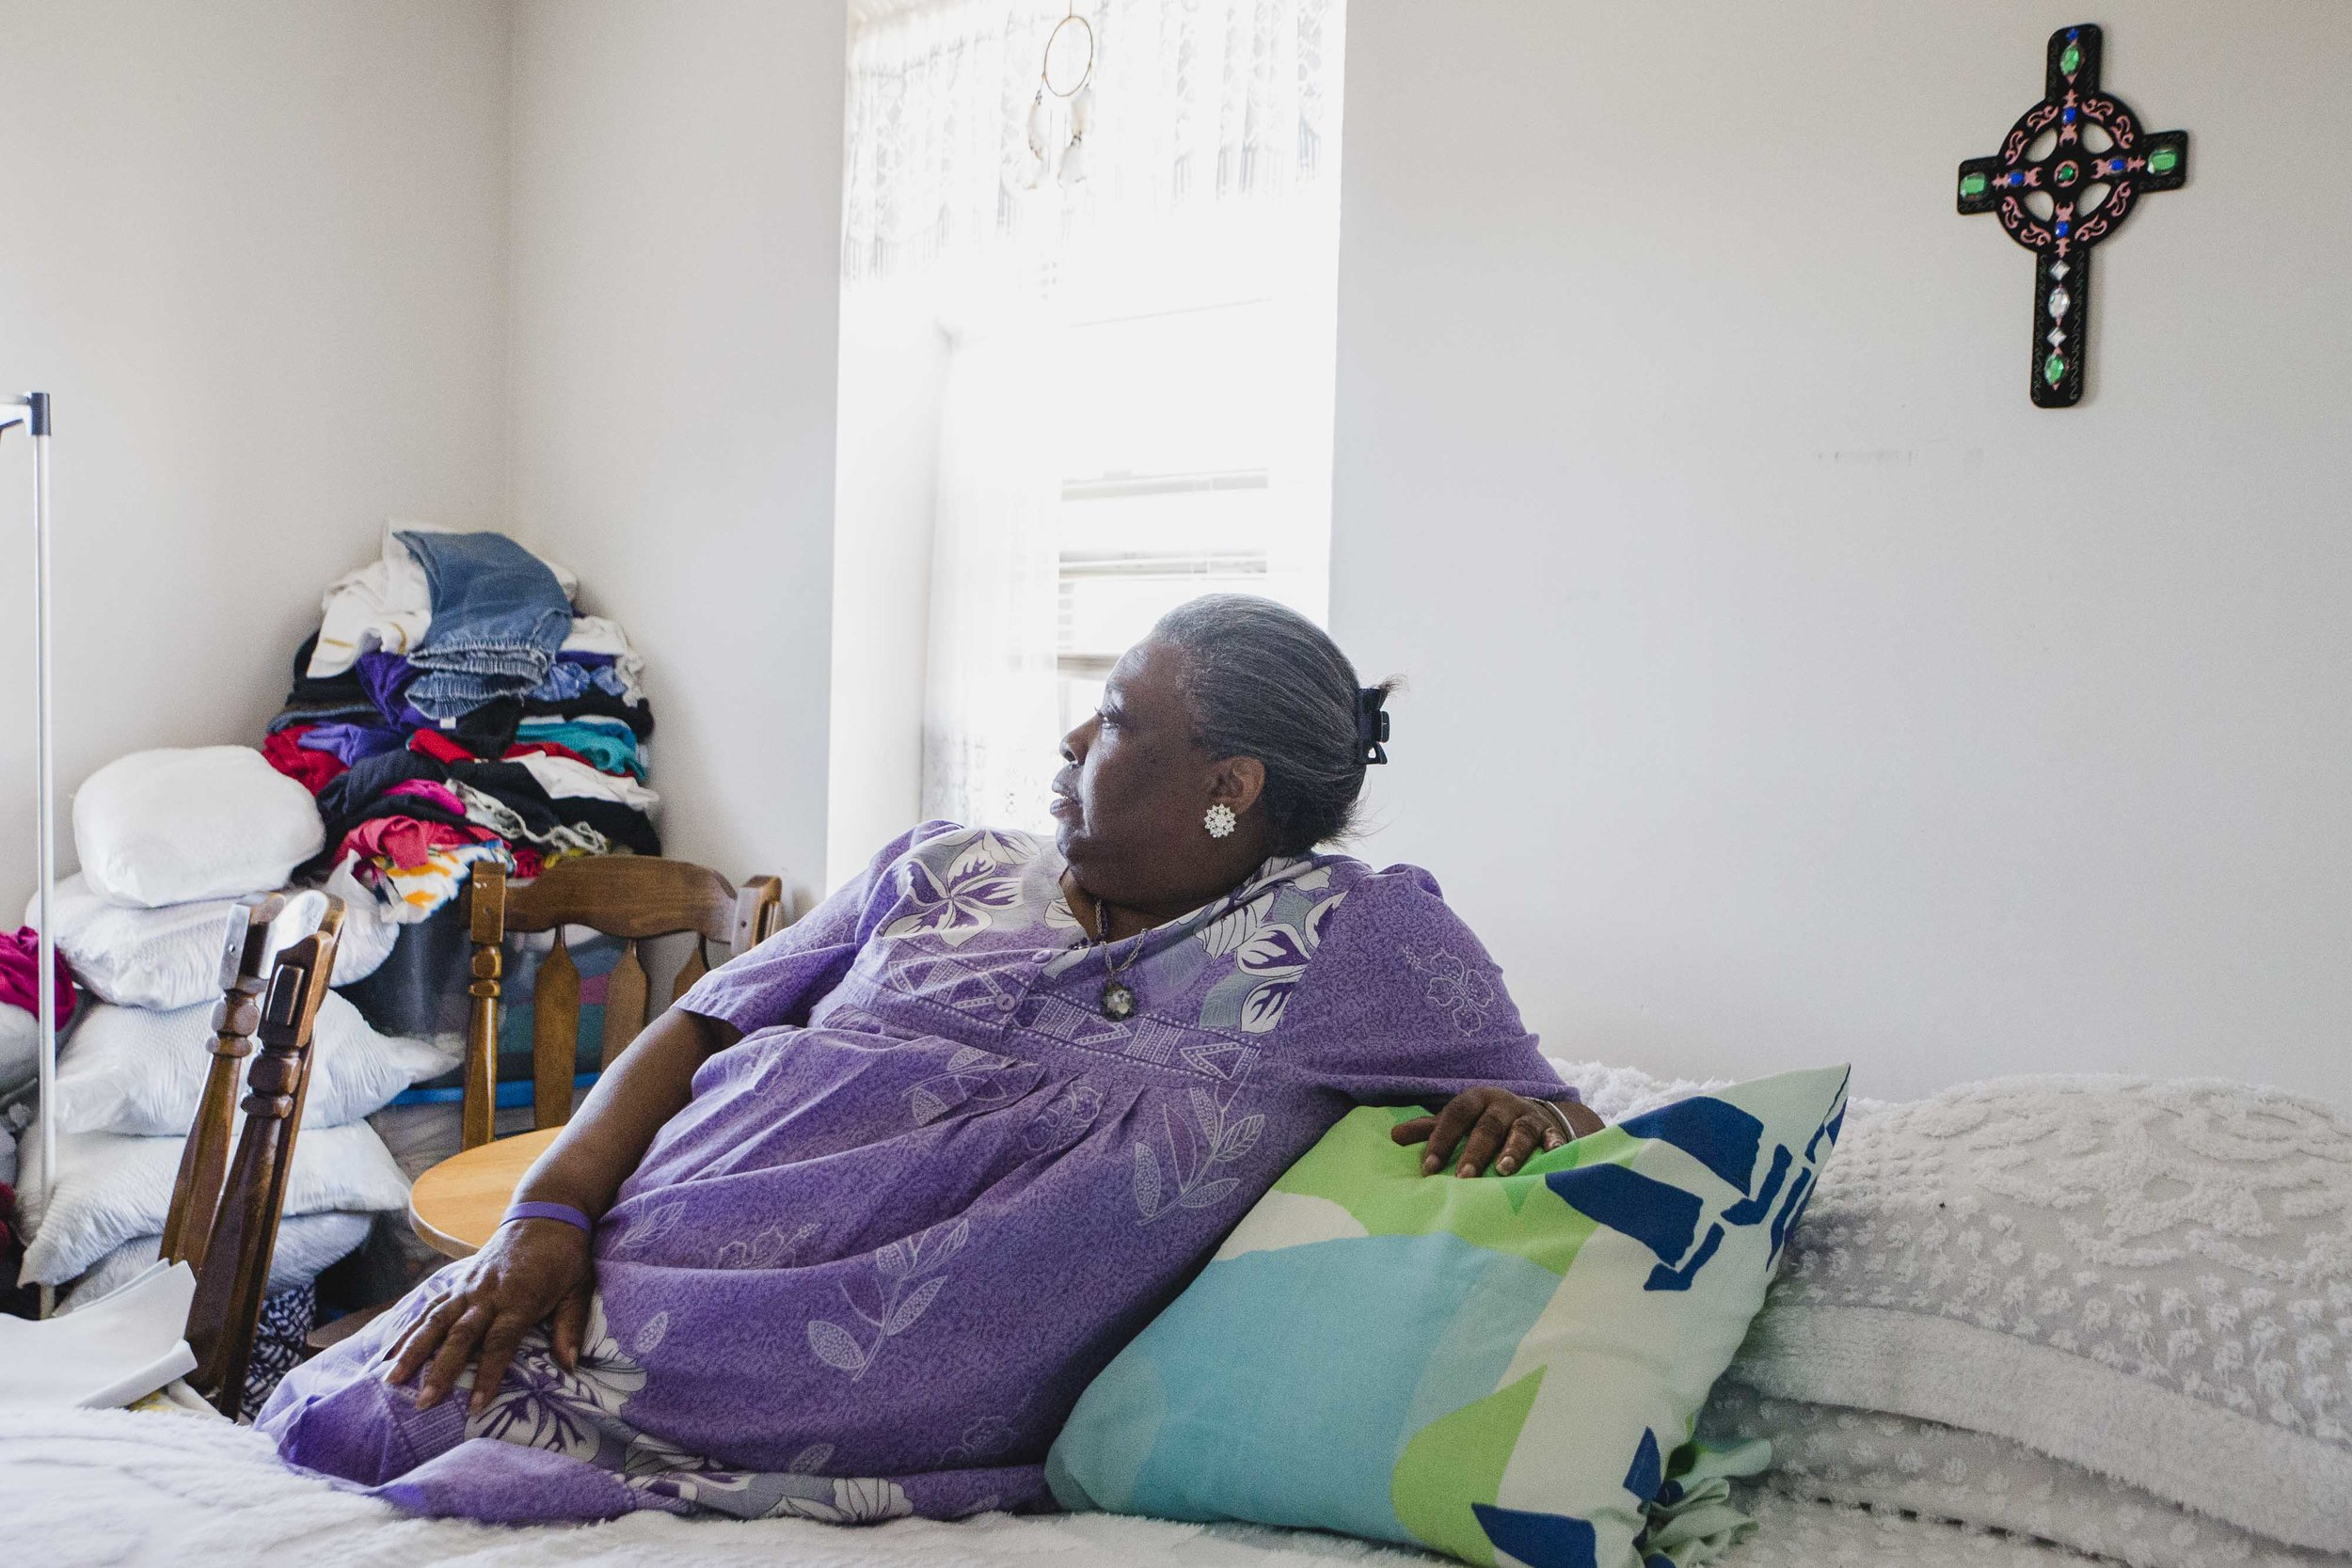 """I don't wanna get old,"" said Darnetta Donegan, 69, who lives alone in a senior building in Washington Park. ""When I see someone my age and they're getting around worse than I am, you know they're in a wheel chair or broken up really bad or mentally gone, that's when you think about it and feel bad about it…I used to take care of people that had all kinds of disorders, but now I'm living here with it…After a while it gets a little depressing. I stay in prayer quite a bit."""